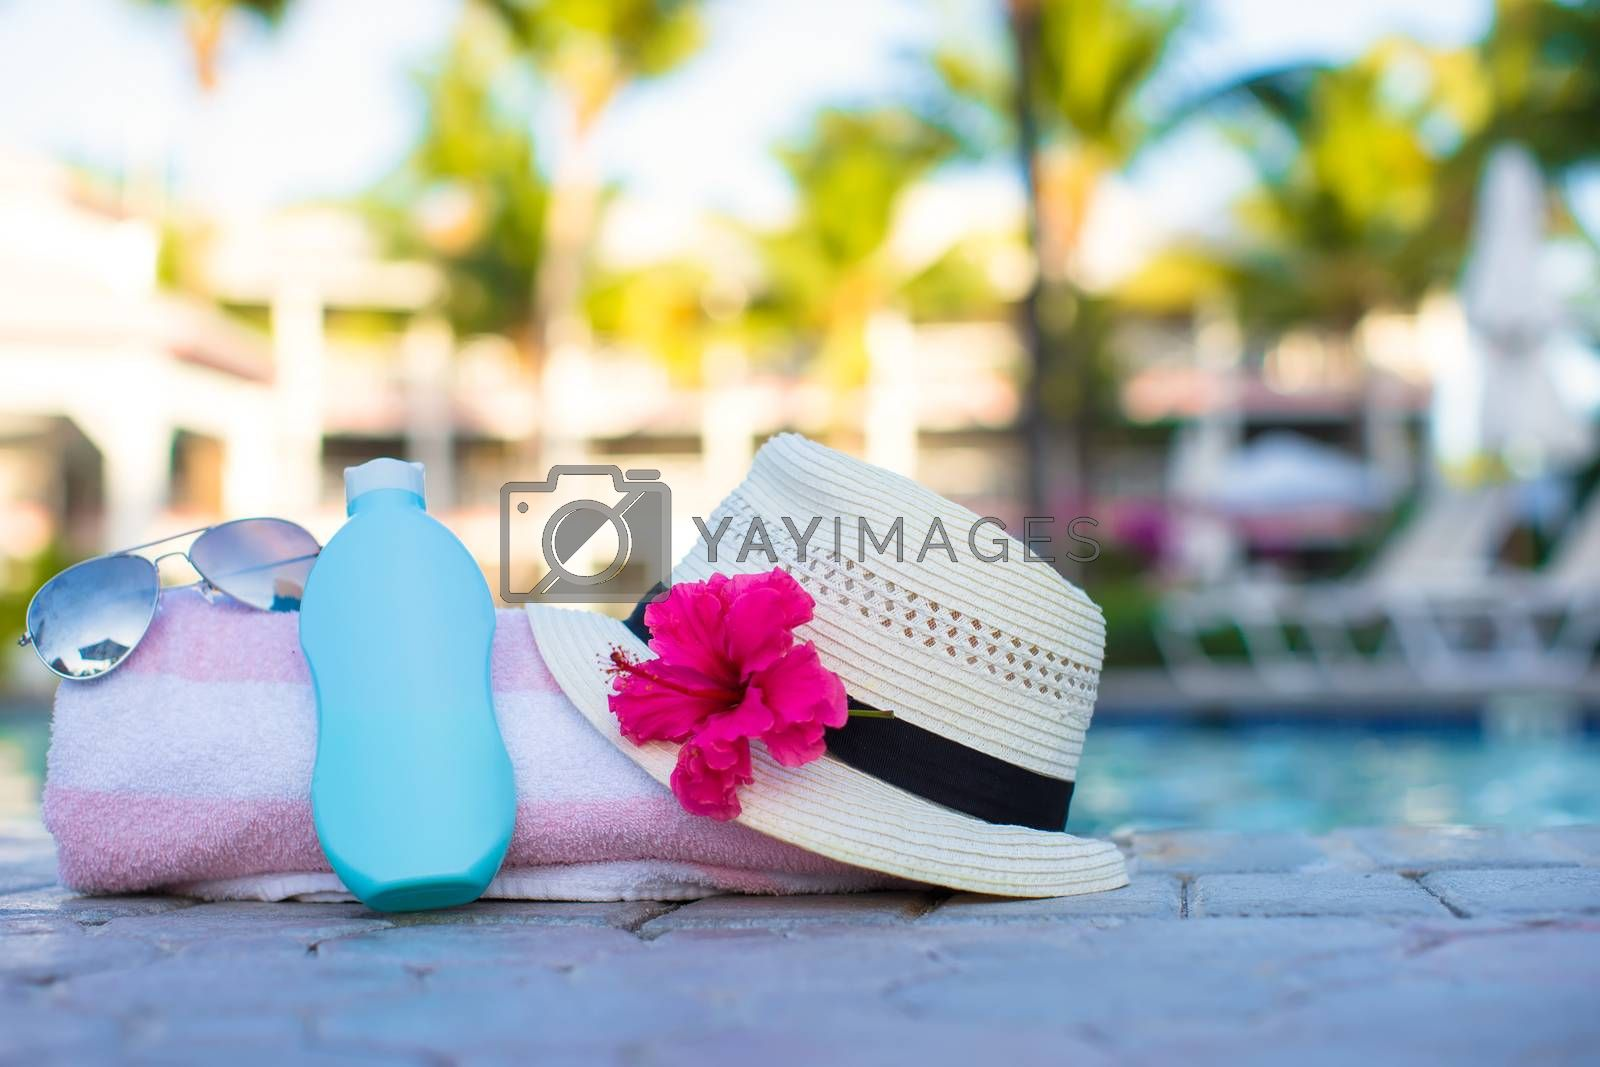 Royalty free image of Suncream, hat, sunglasses, flower and tower near swimming pool by travnikovstudio